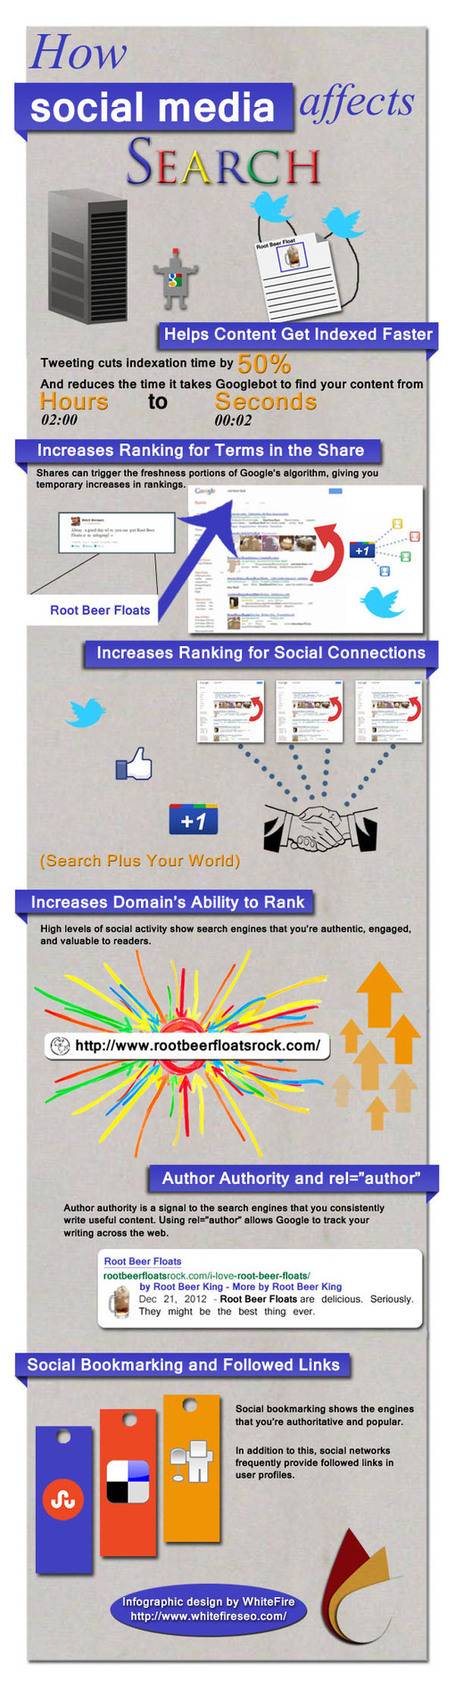 How Social Media Impacts SEO and Site Ranking: infographic | Social Media Marketing Know-How | Scoop.it